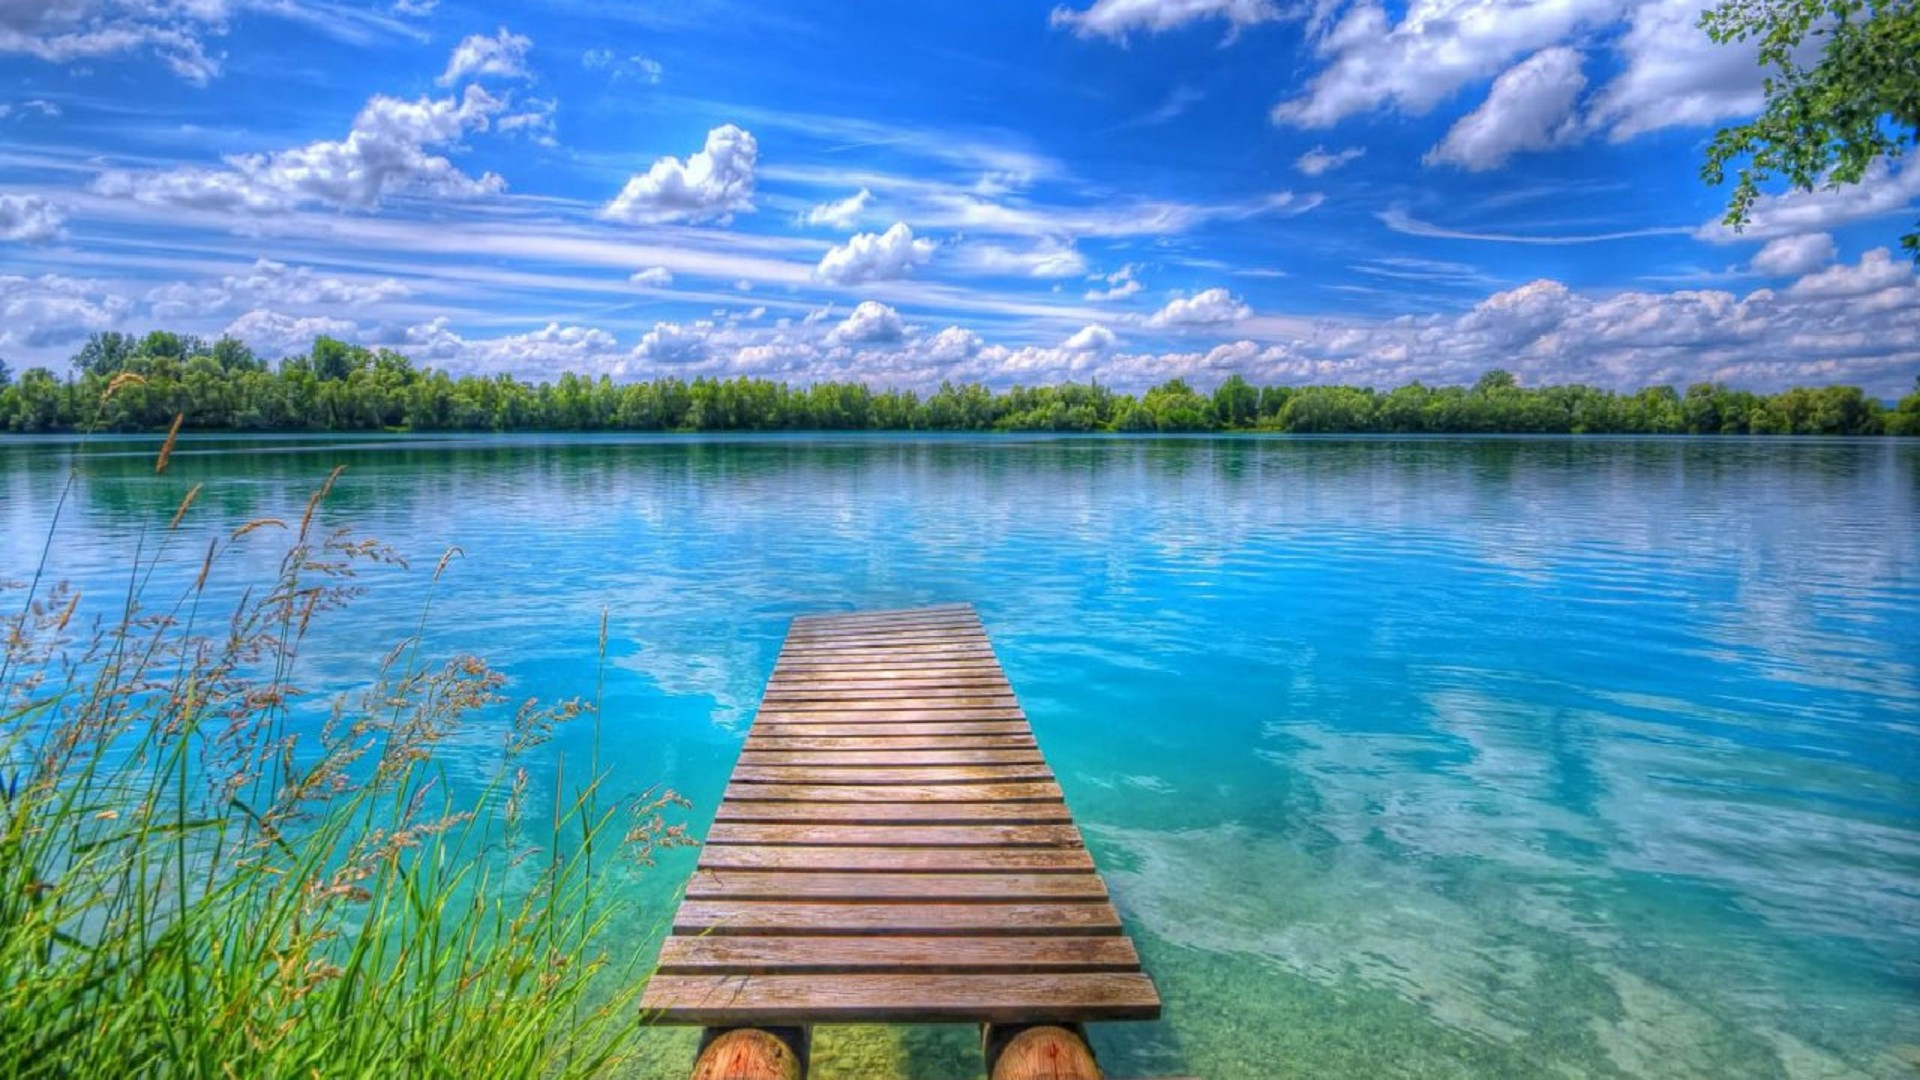 Background Beautiful Nature Lake Blue Sky With White 1920x1080